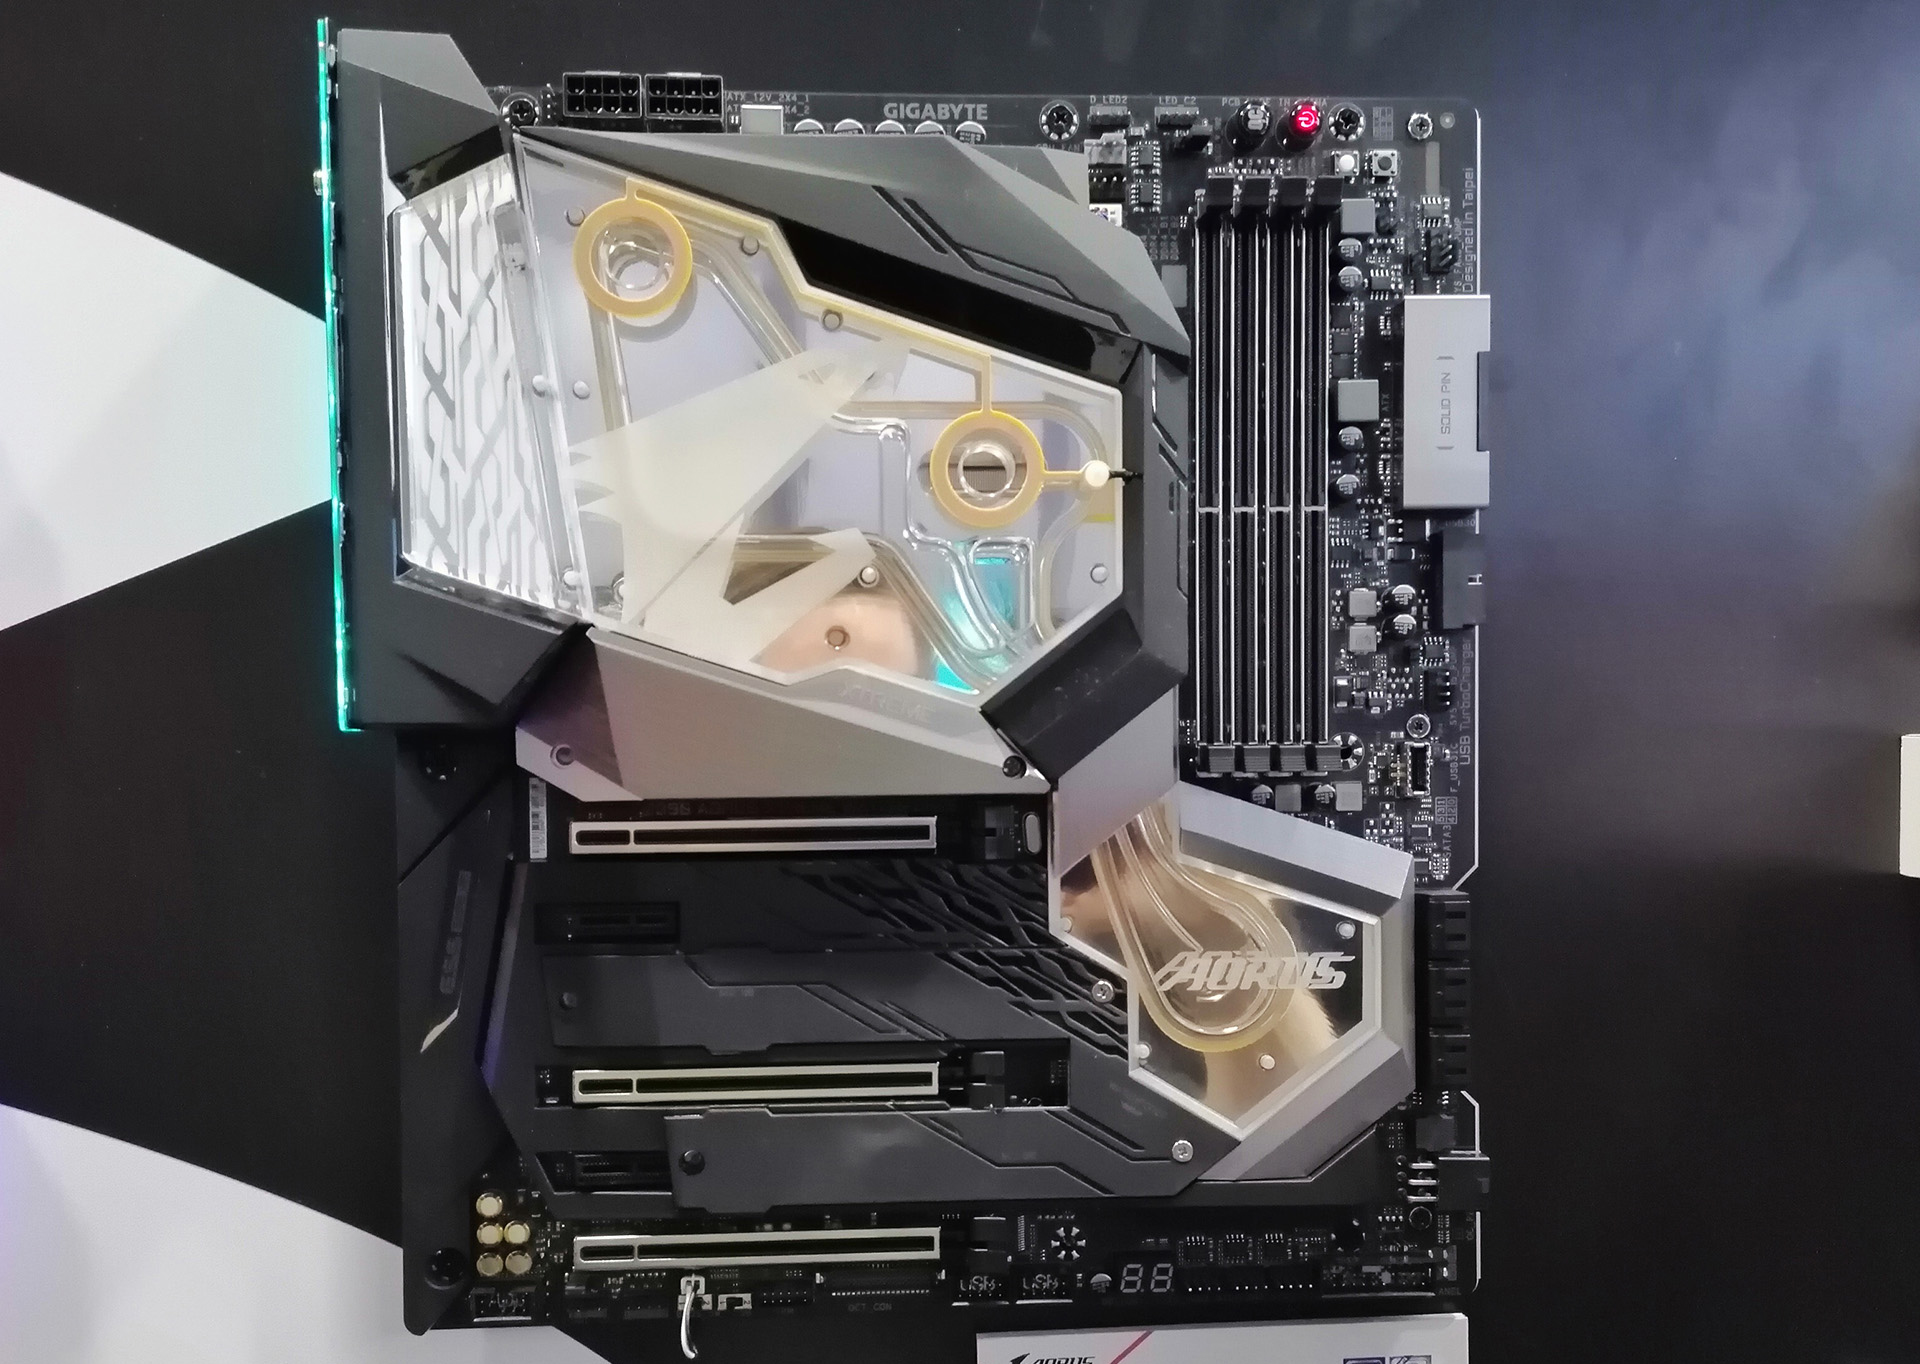 GIGABYTE to Bundle Pre-Tested Core i9-9900K CPU at 5 1 GHz